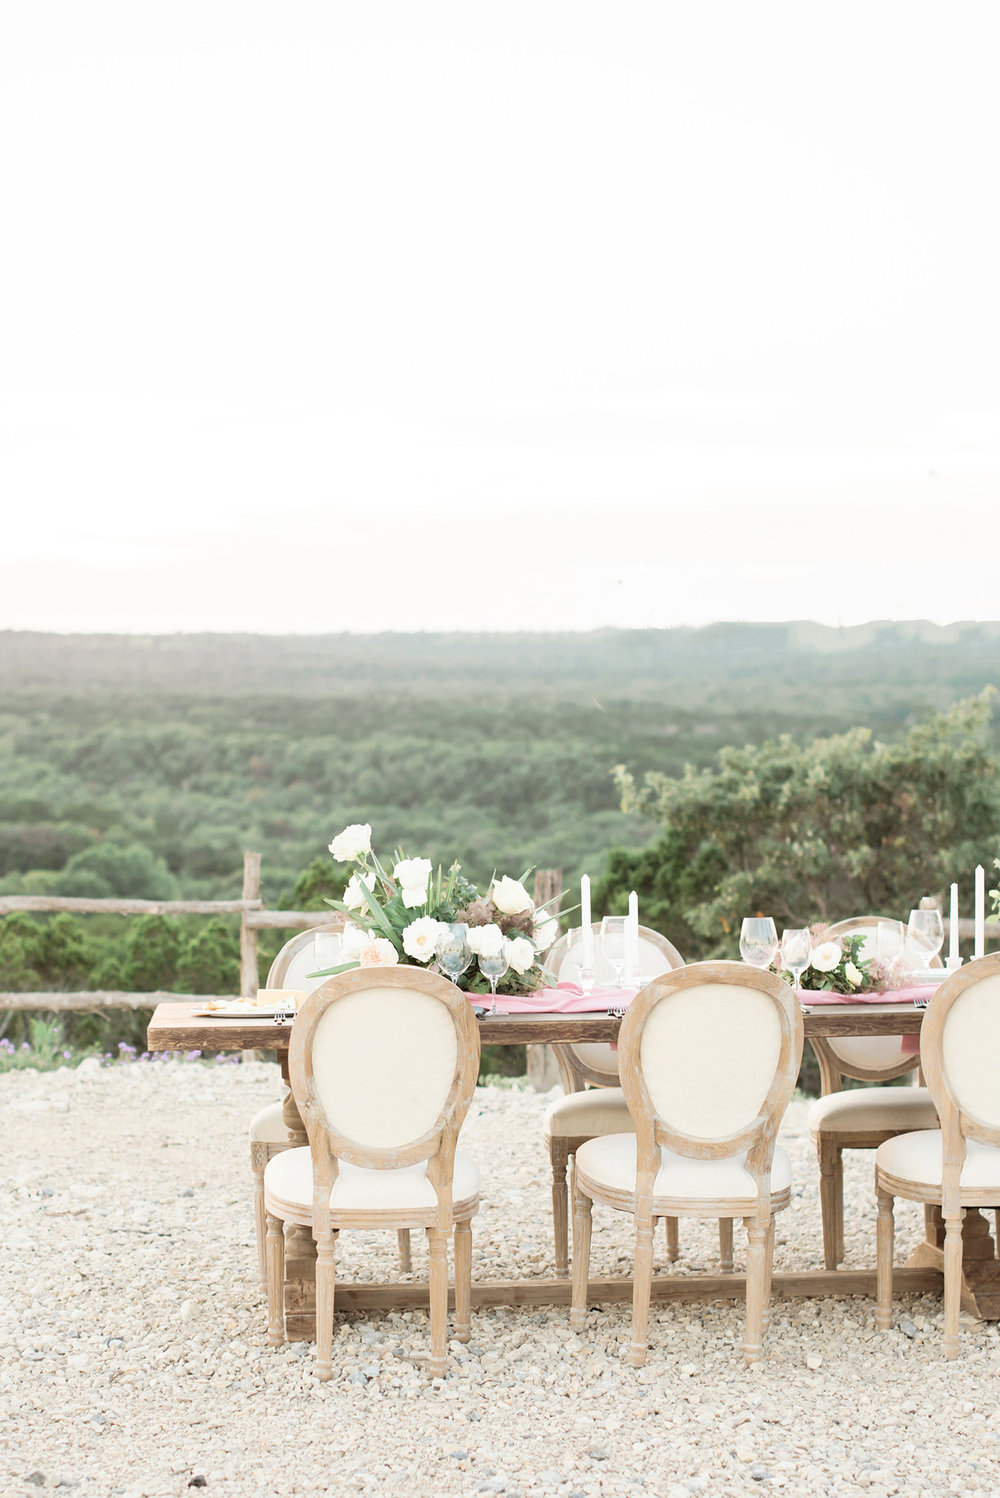 Whimsical Summer Vineyard Wedding Inspiration - Olive Grove Design - 00179.jpg